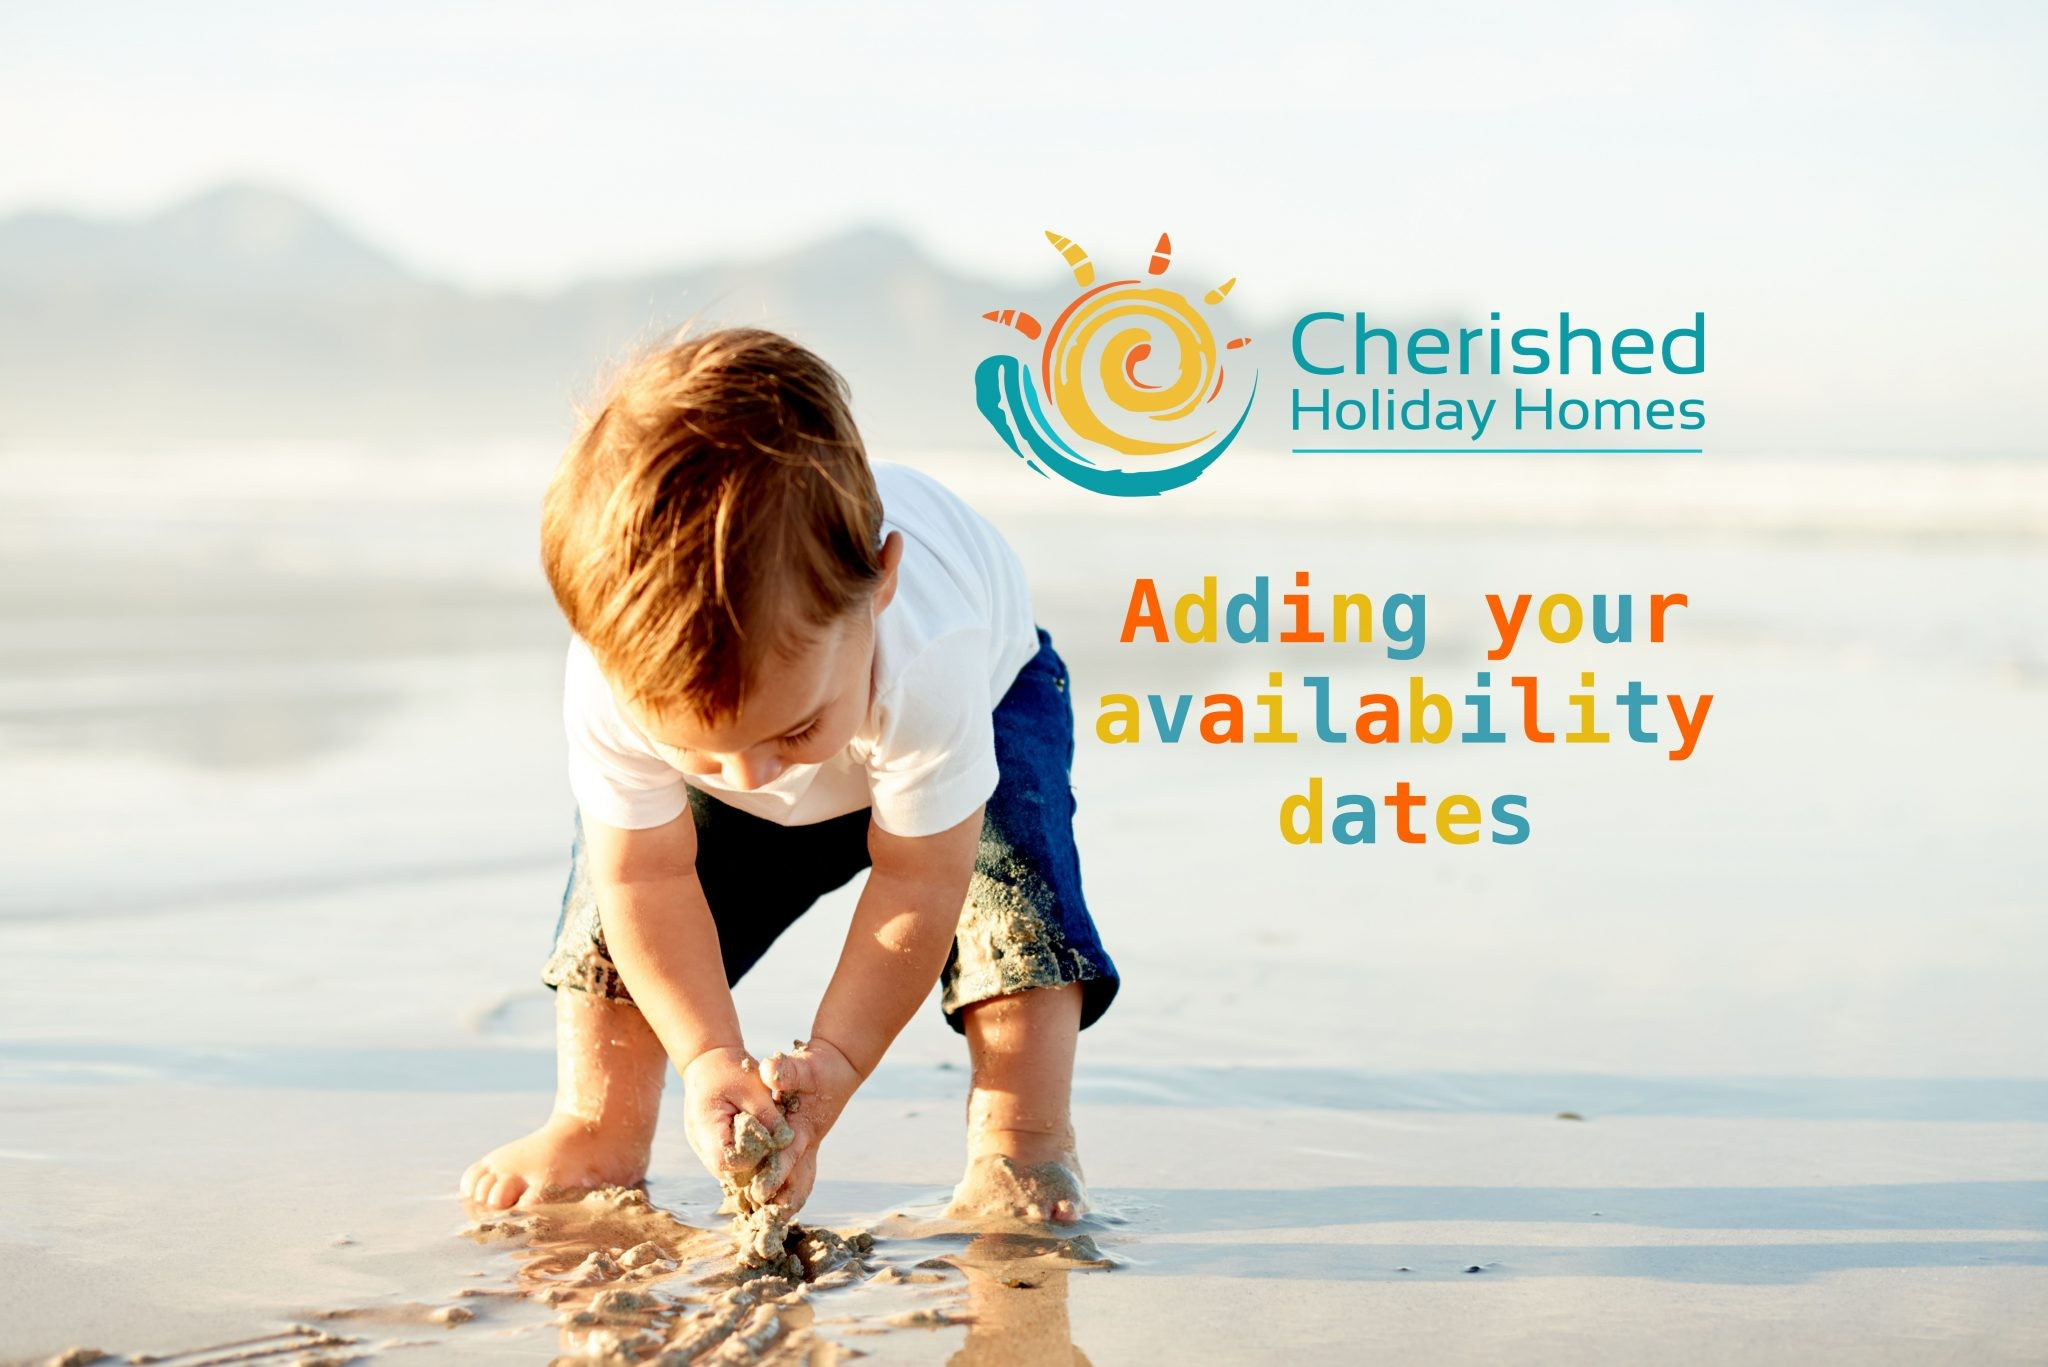 adding your availability dates